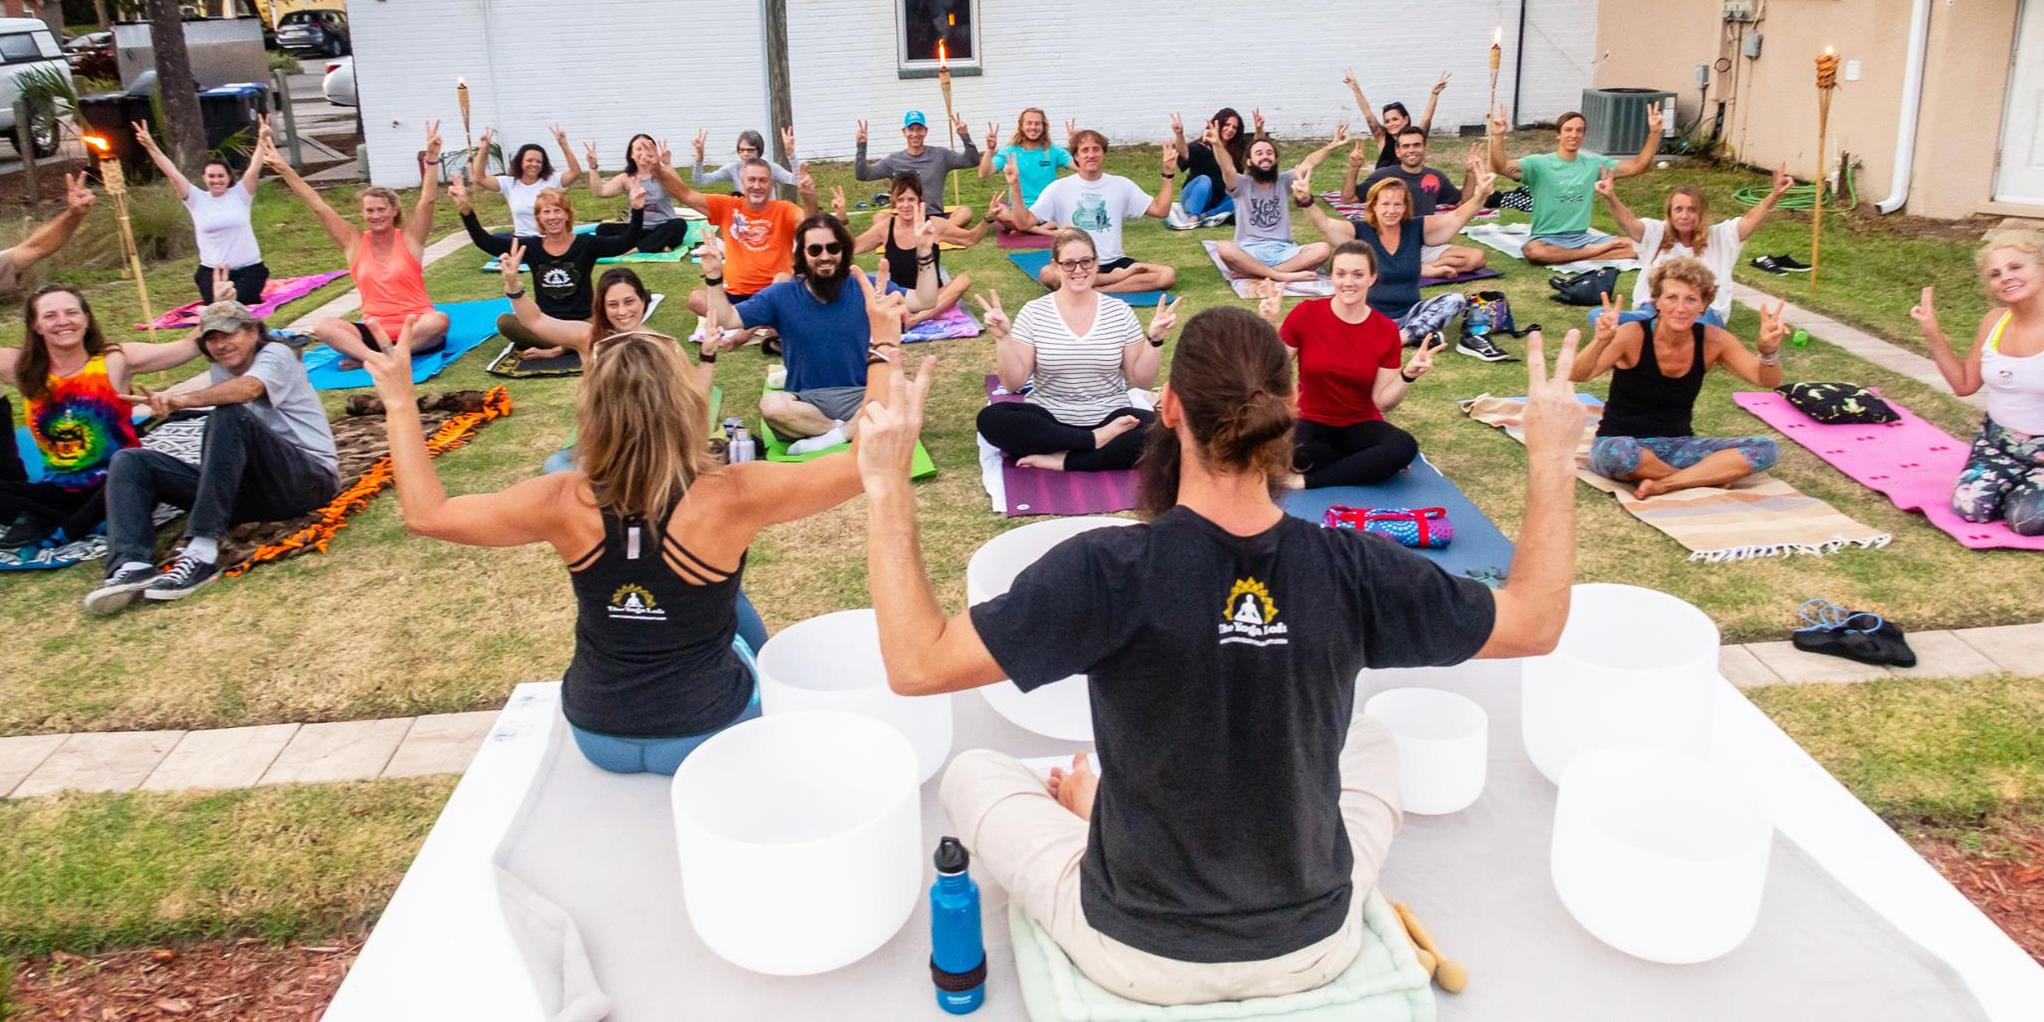 Donation Meditation and Mindfulness at The Titusville Yoga Loft in Downtown Titusville. Titusville Yoga, Yoga for Beginners, Gentle Yoga, Hatha Yoga, Vinyasa Yoga, Ashtanga Yoga, Yin Yoga, Barre, Yoga for Kids, Titusville Yoga in the Park.jpg